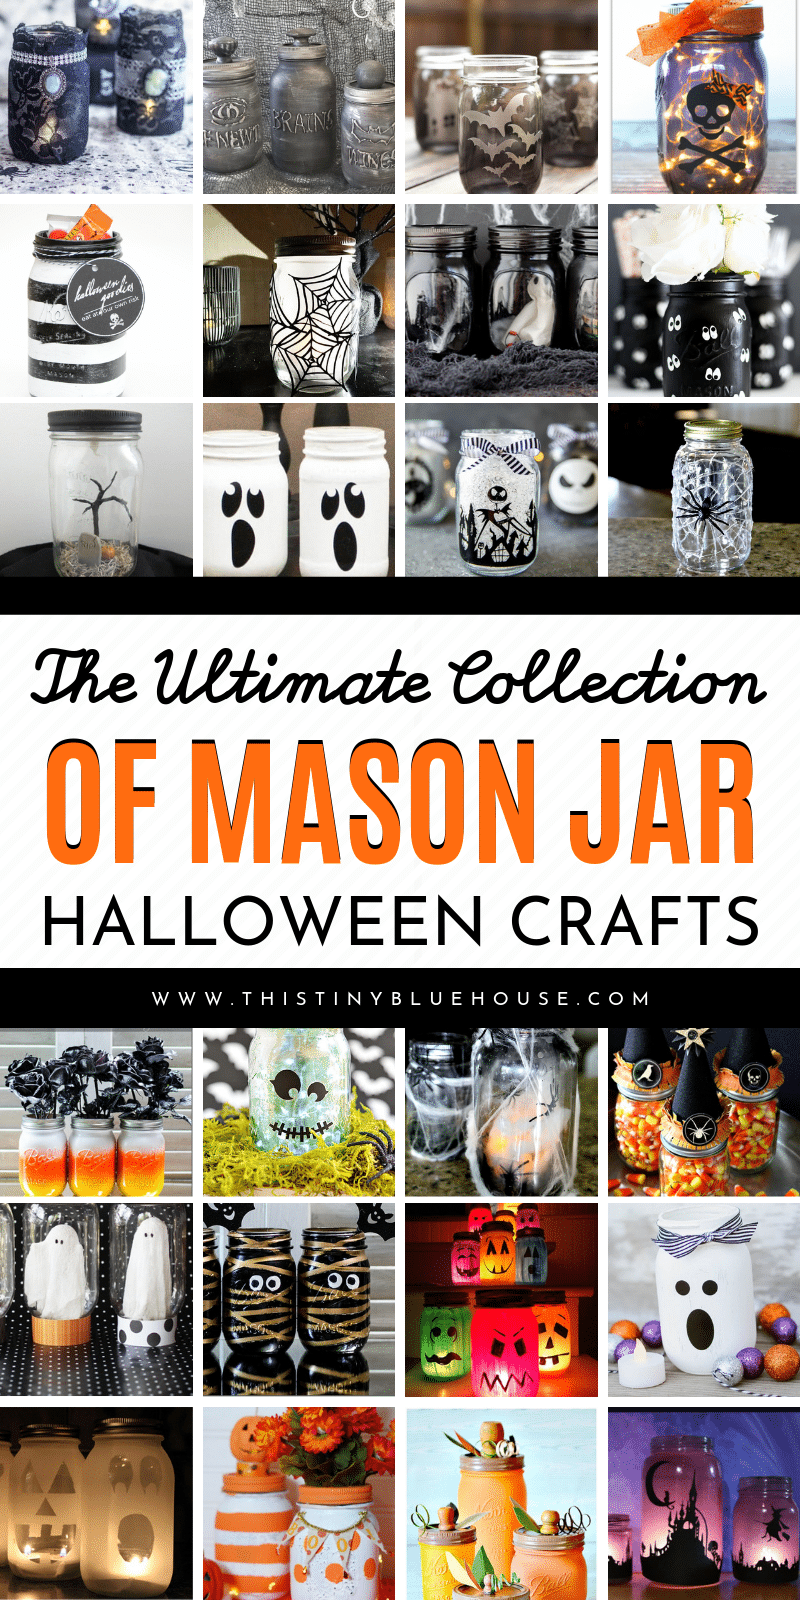 Here are over 50 spooky DIY Halloween Mason Jars that are a perfect way to decorate your home in anticipation of Halloween. From pumpkin mason jars to spooky villages these crafts are a great way to get excited about Halloween. #DIYHalloweenDecor #DIYHalloweenDecorIdeas #DIYHalloweenMasonJars #DIYHalloweenMasonJarCrafts #HalloweenMasonJarCrafts #MasonJarCrafts